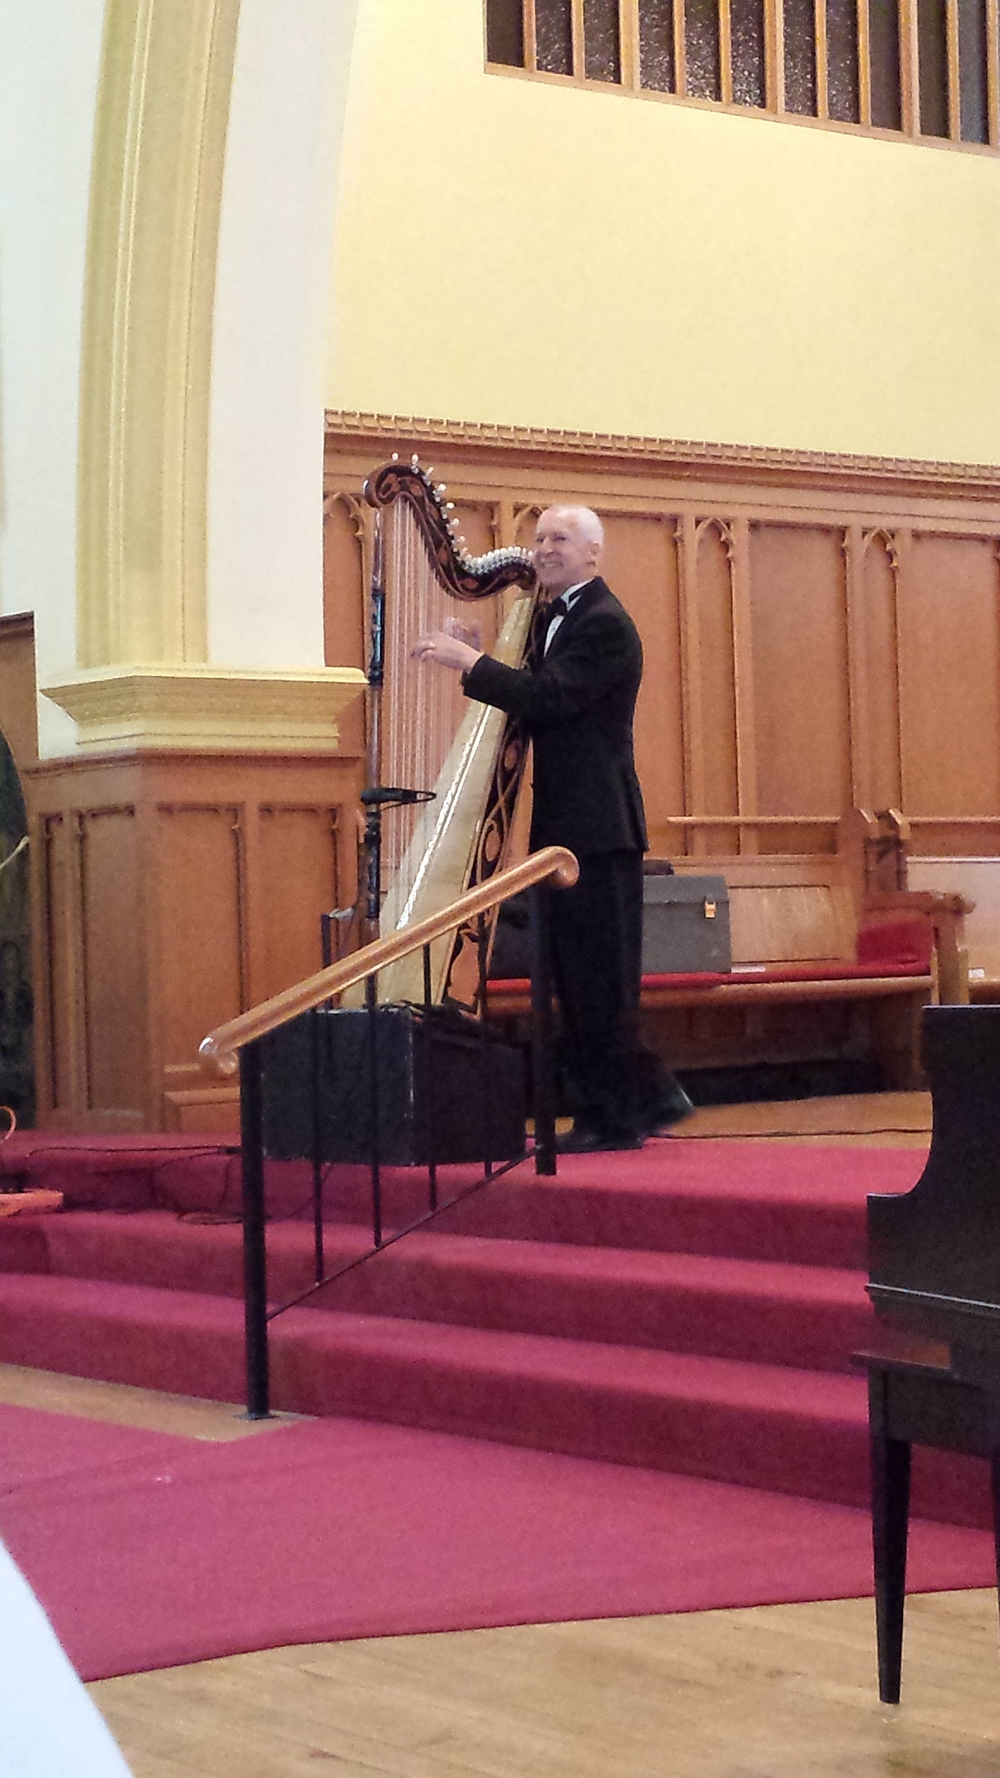 Eduard Klassen brought his enthusiastic faith and incredible musical talents to St. Peter's on Sunday, January 26th 2014. We were blessed by his witness and his gift of music!